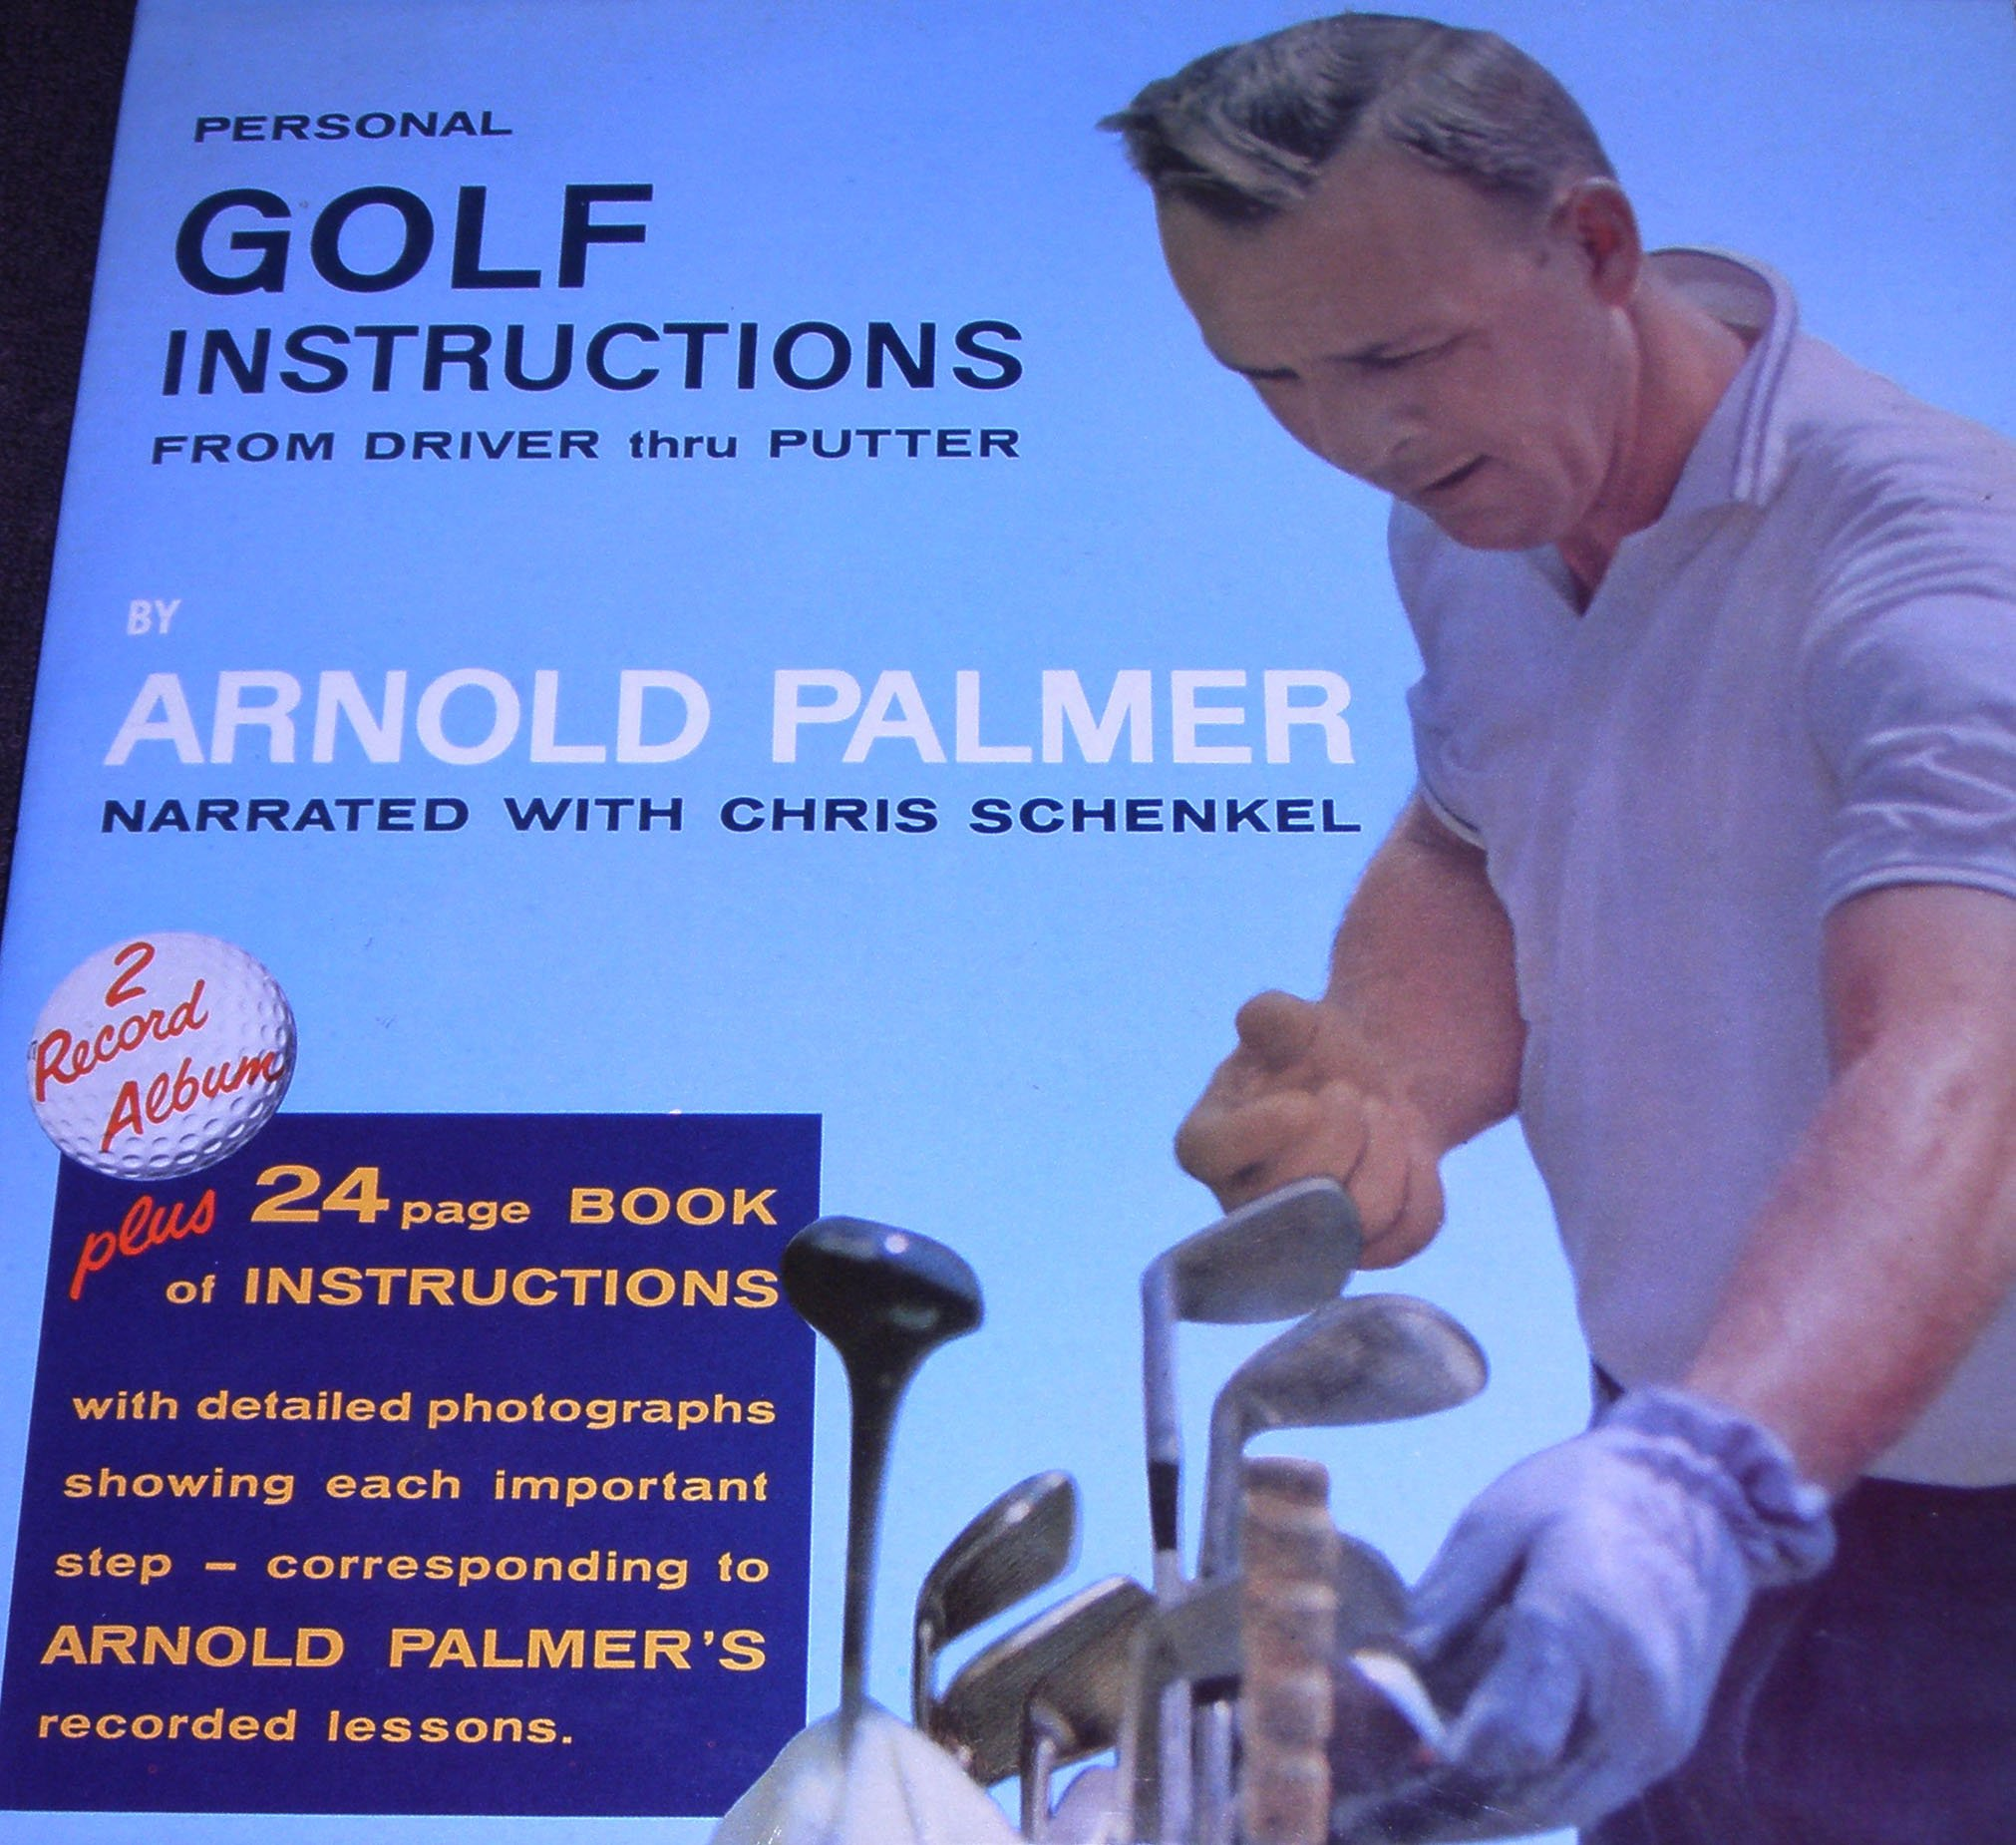 Personal Golf Instructions From Driver Thru Putter by Sports Champions